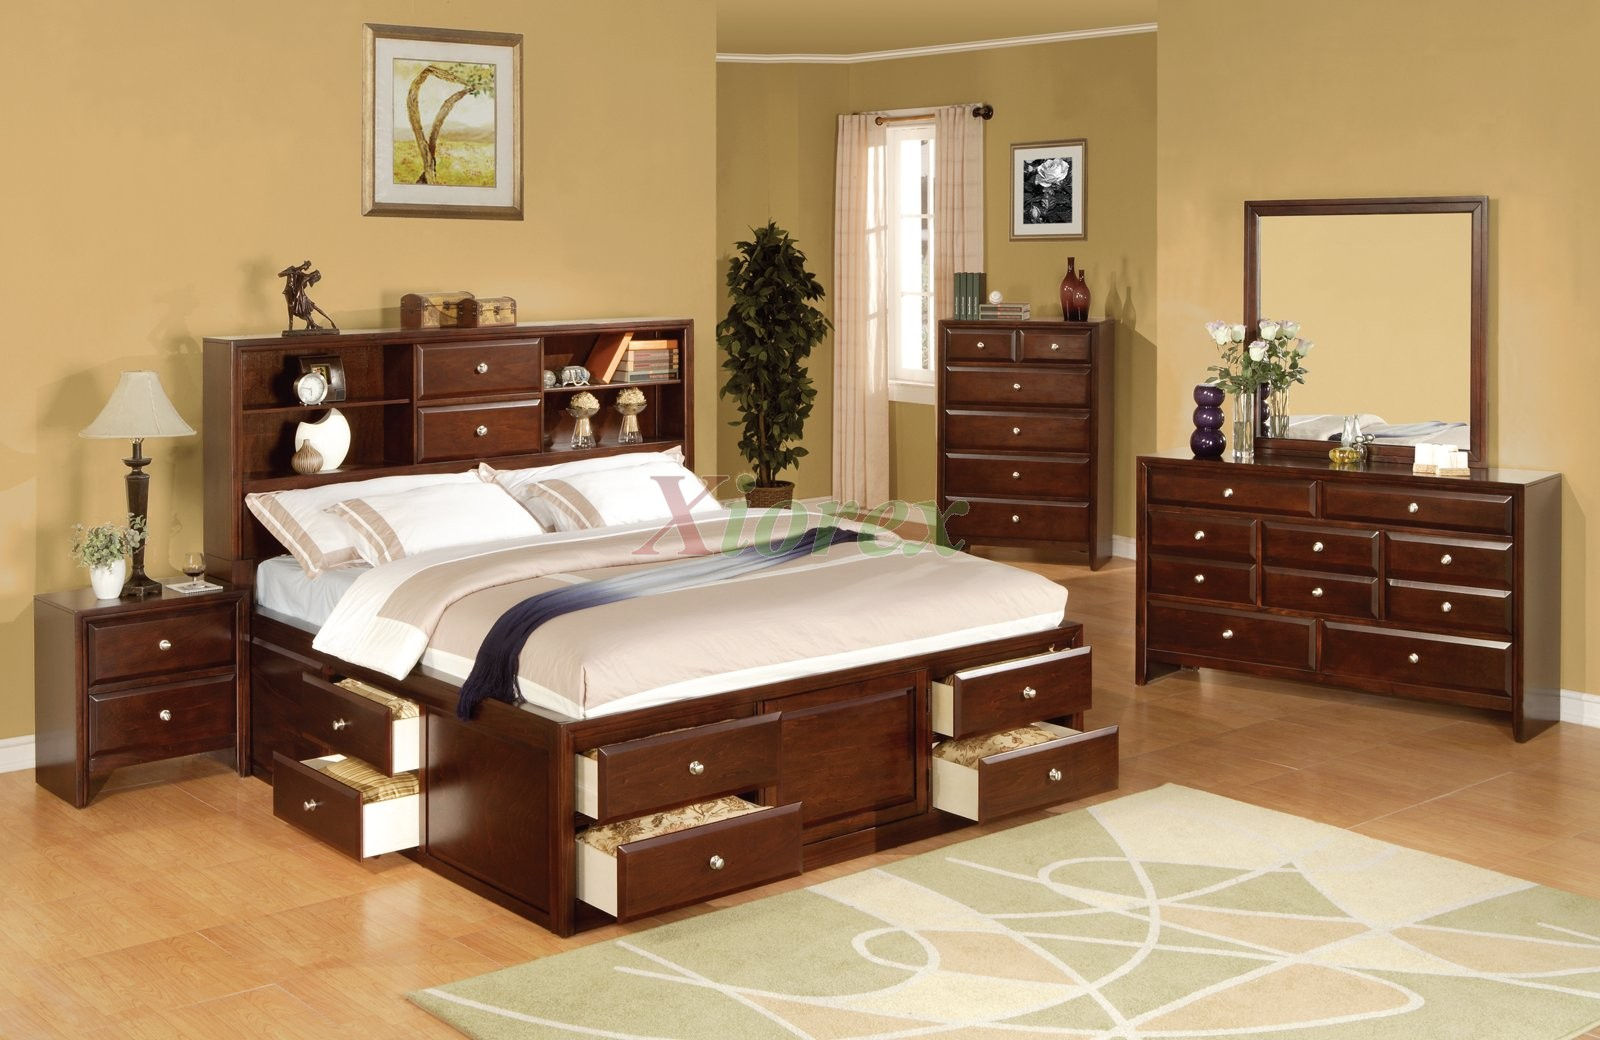 Bookcase and storage bedroom furniture set 137 xiorex for I need bedroom furniture